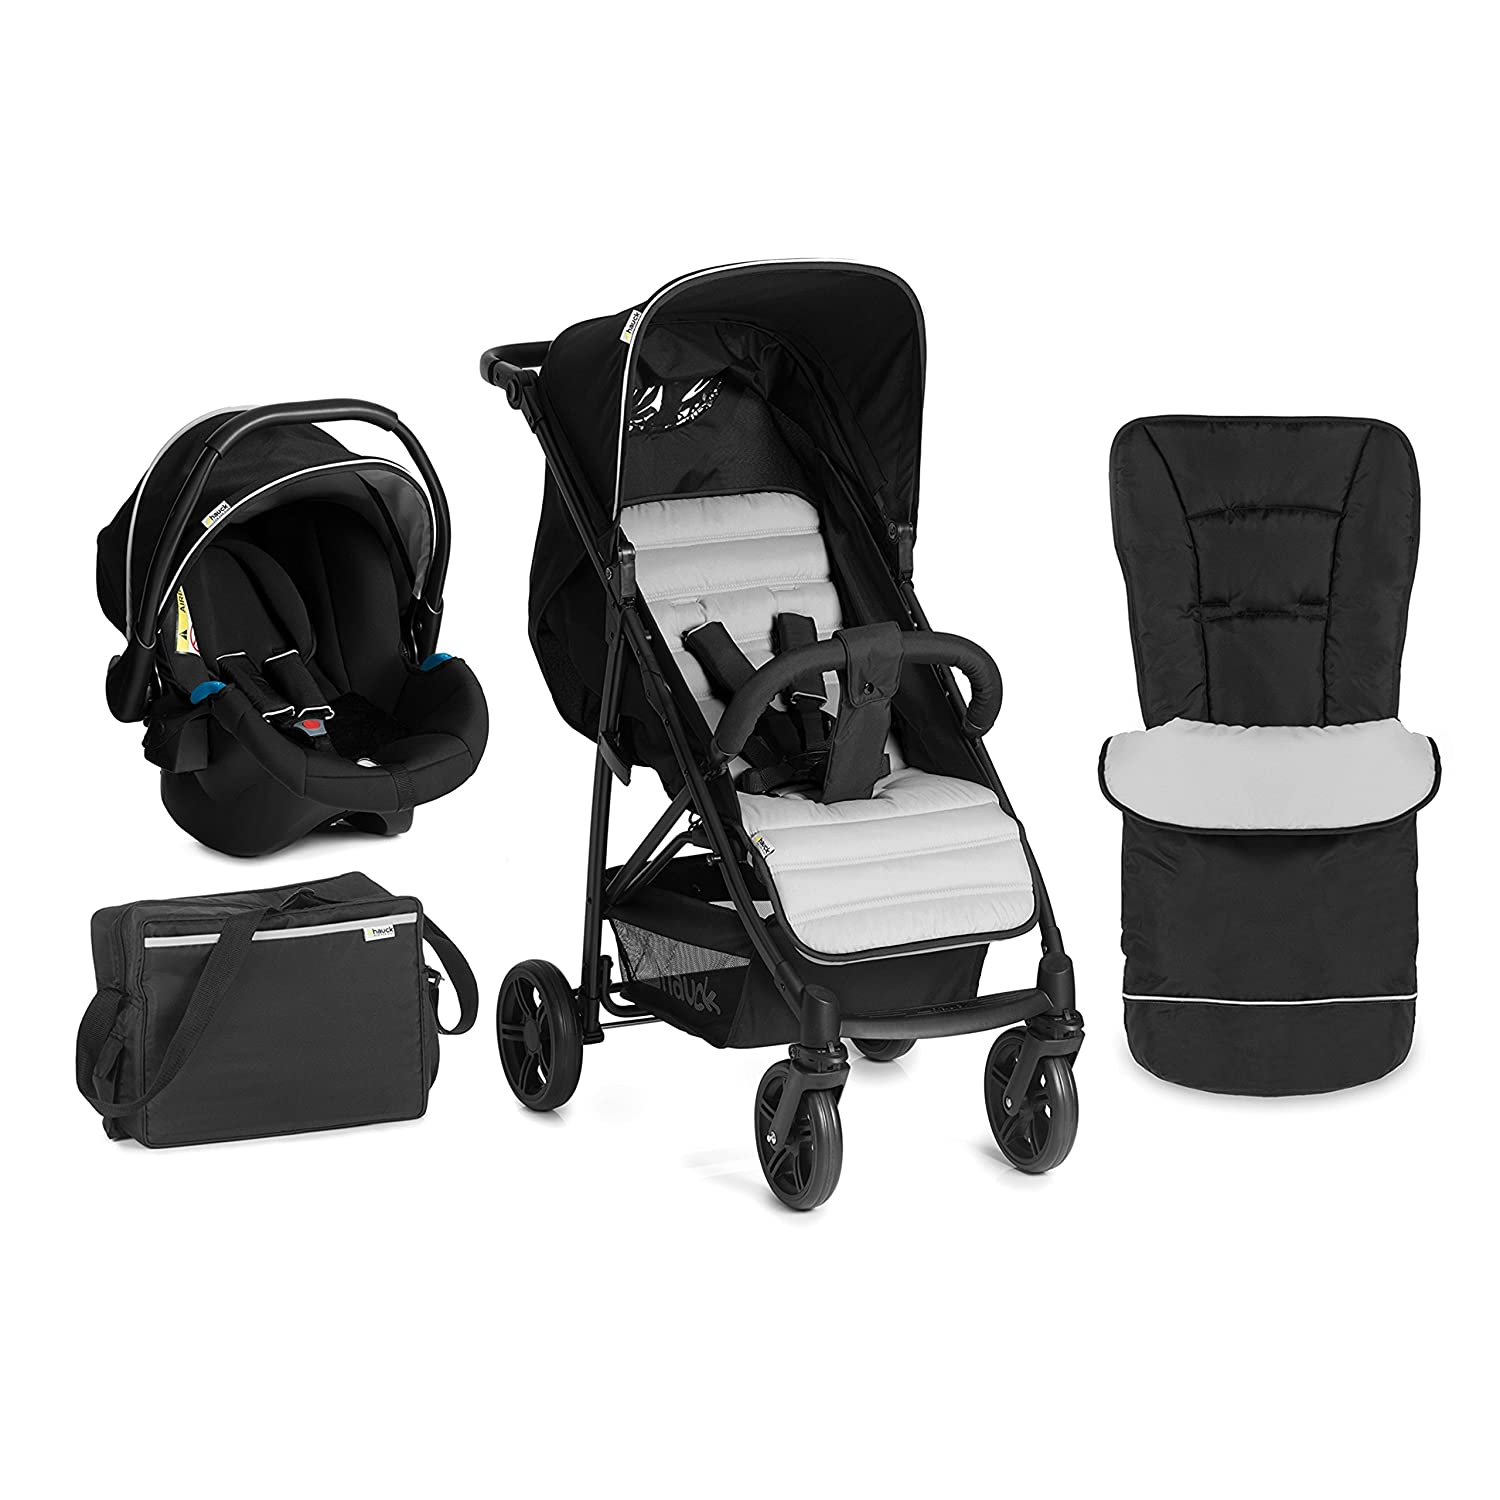 Hauck Rapid 4 Plus Shop-n-Drive Set Quick Fold Travel System, from Birth to 22 Kg, Black/Beige (Group 0+ Car Seat, Compatible with Optional ISOFix Base, Foot Muff, Changing Bag and Raincover) 149591